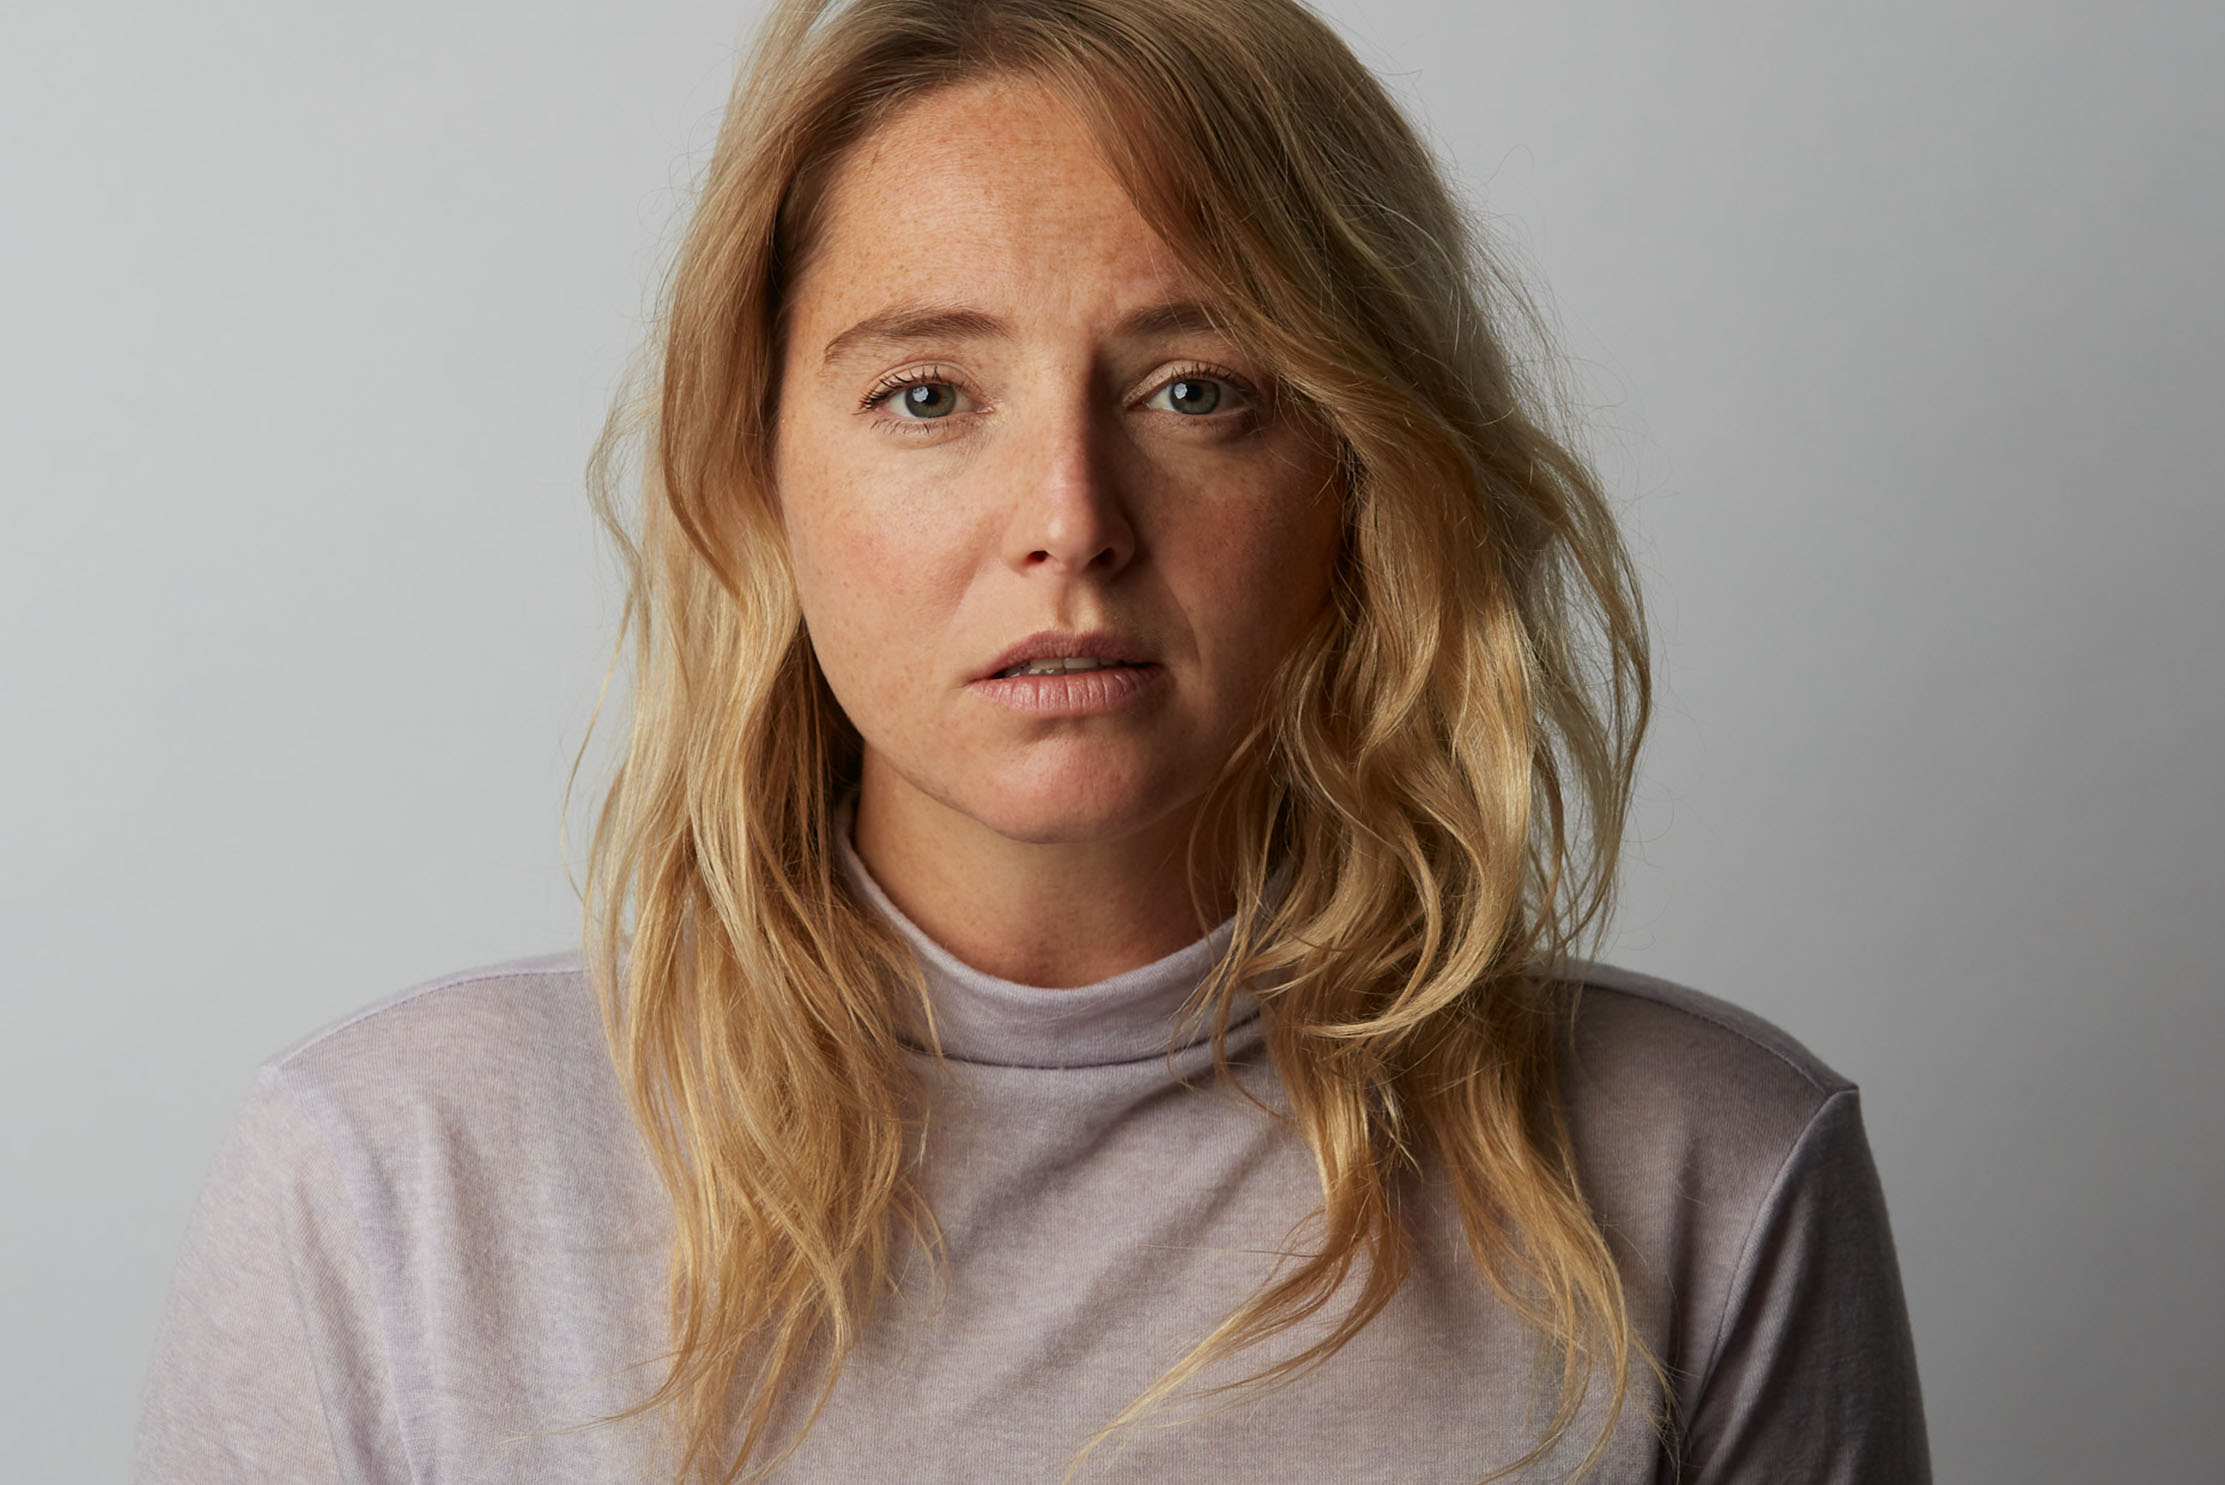 BN1 chats with Lissie ahead of Brighton show